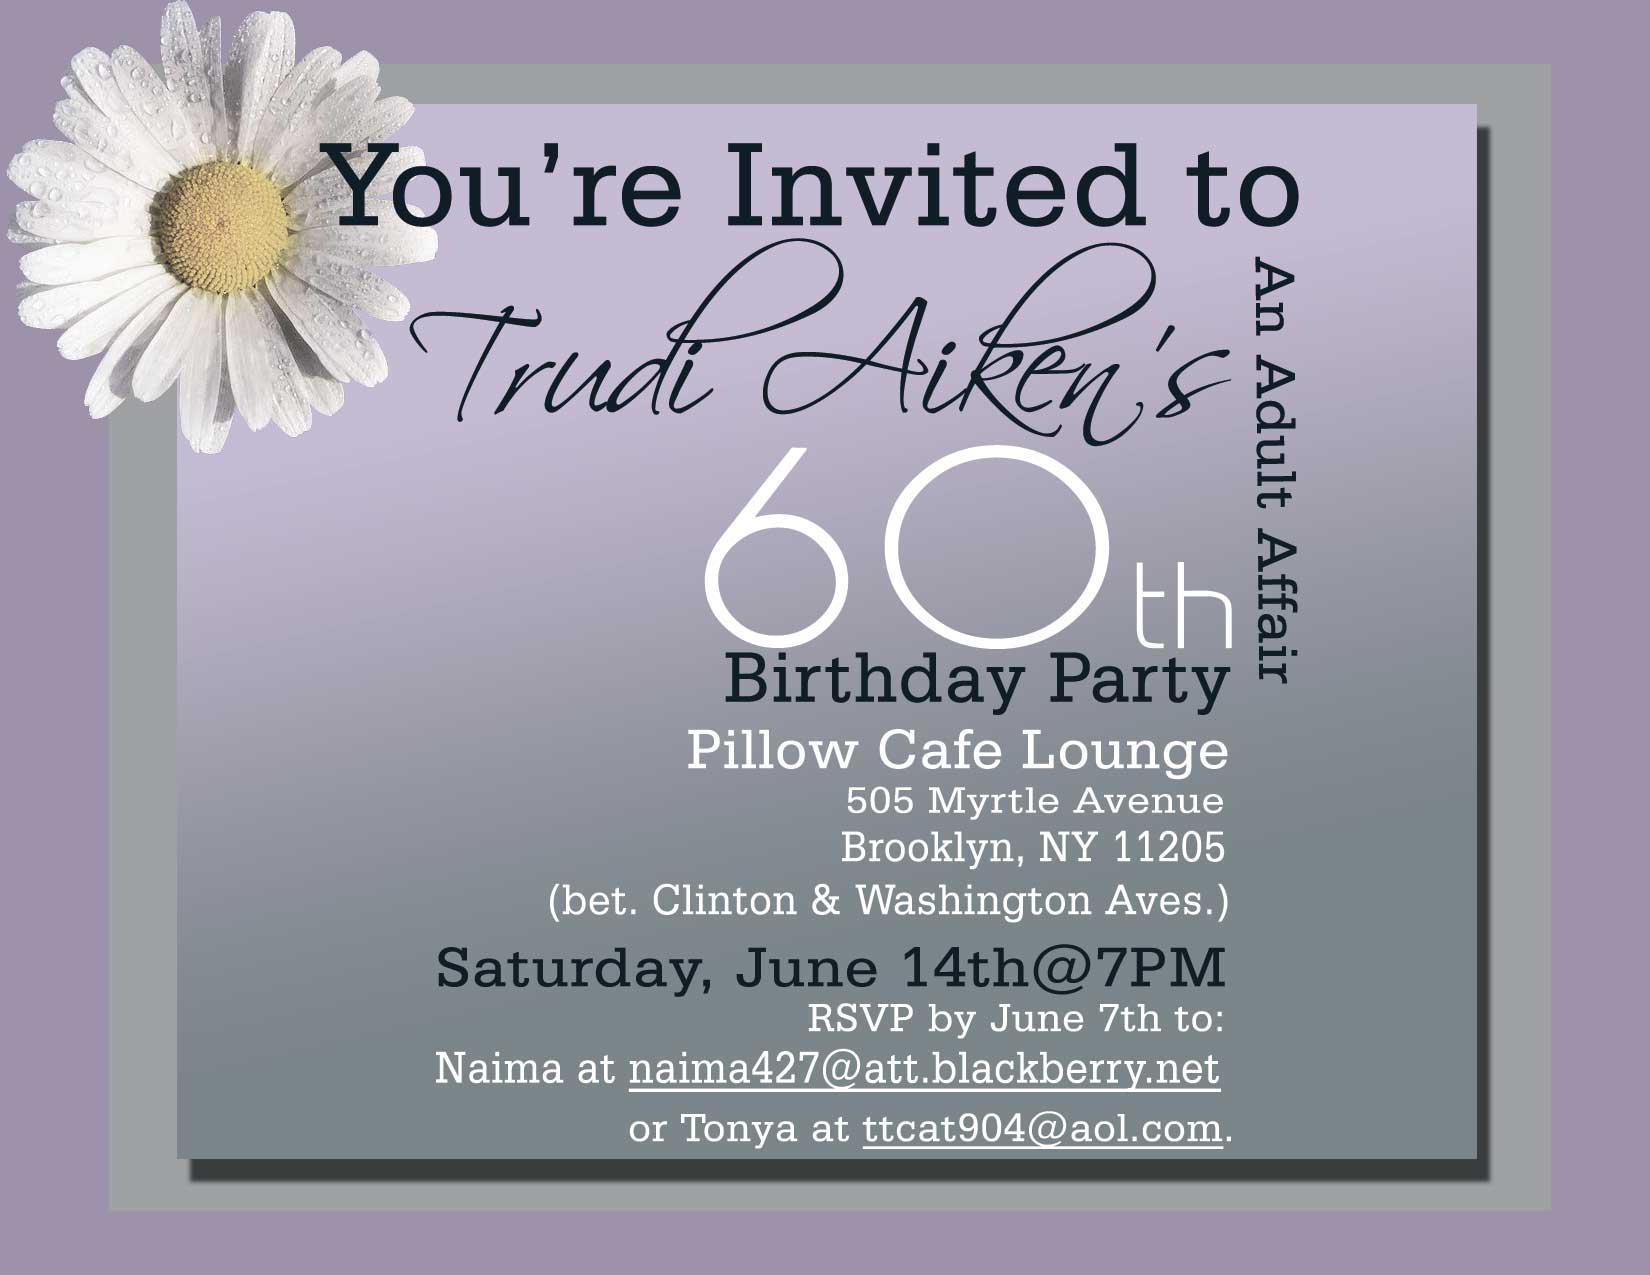 60th birthday party invitation sayings ; stunning-60th-birthday-invitation-wording-sample-of-winsome-Birthday-invitation-to-initiate-your-idea-7